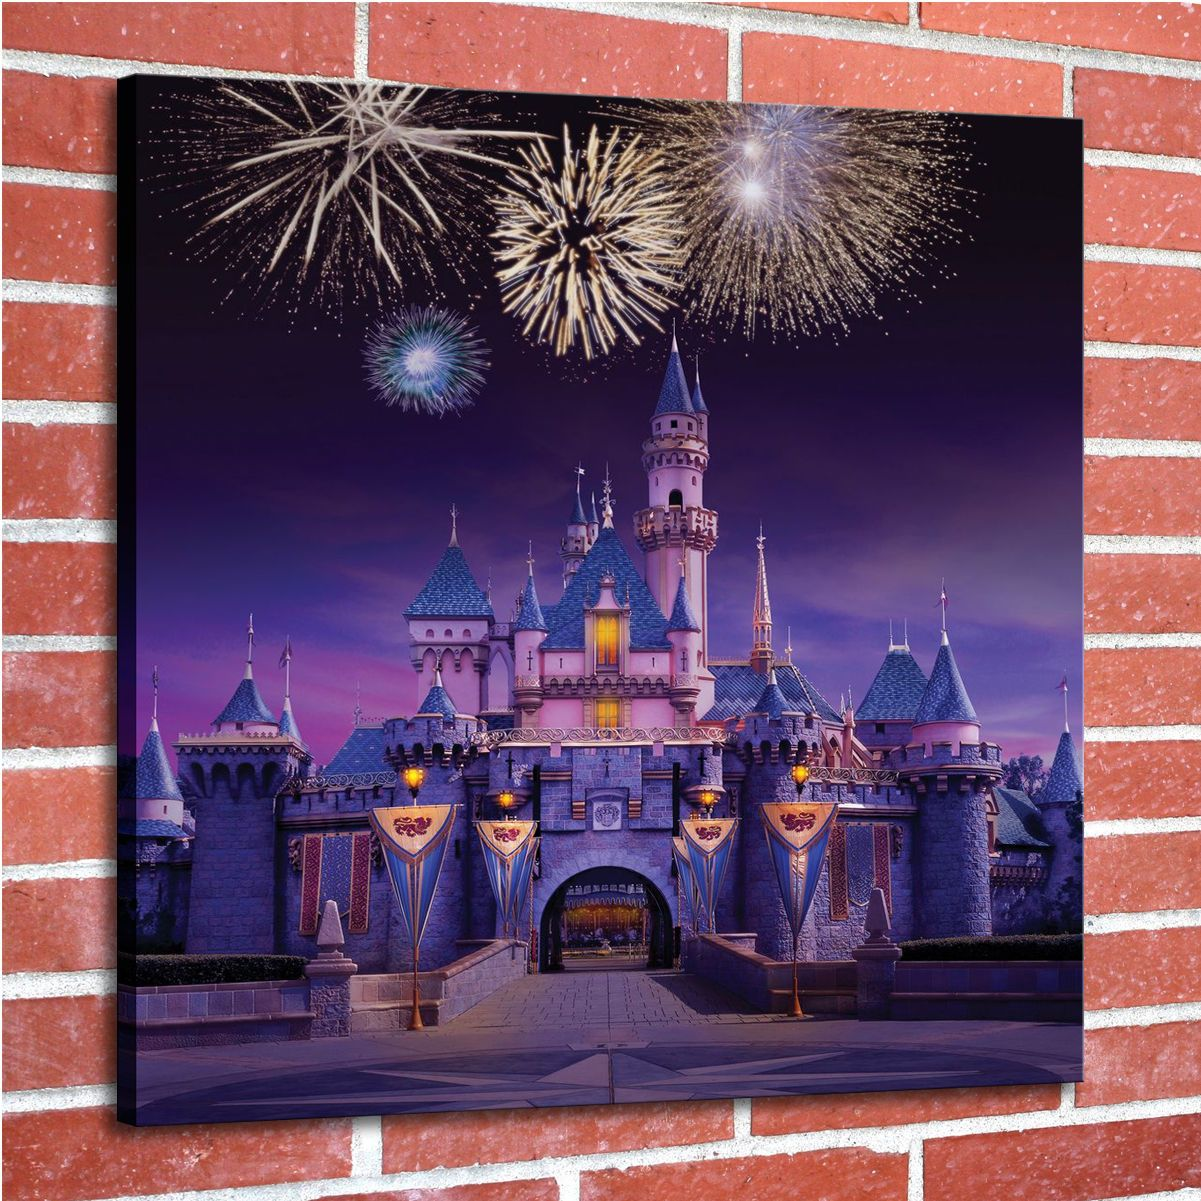 Hd Painting Picture Print On Canvas Wall Art Disney Castle Unframed Poster Photo Ebay Home Ga Disney World Florida Resident Disney World Florida Disneyland